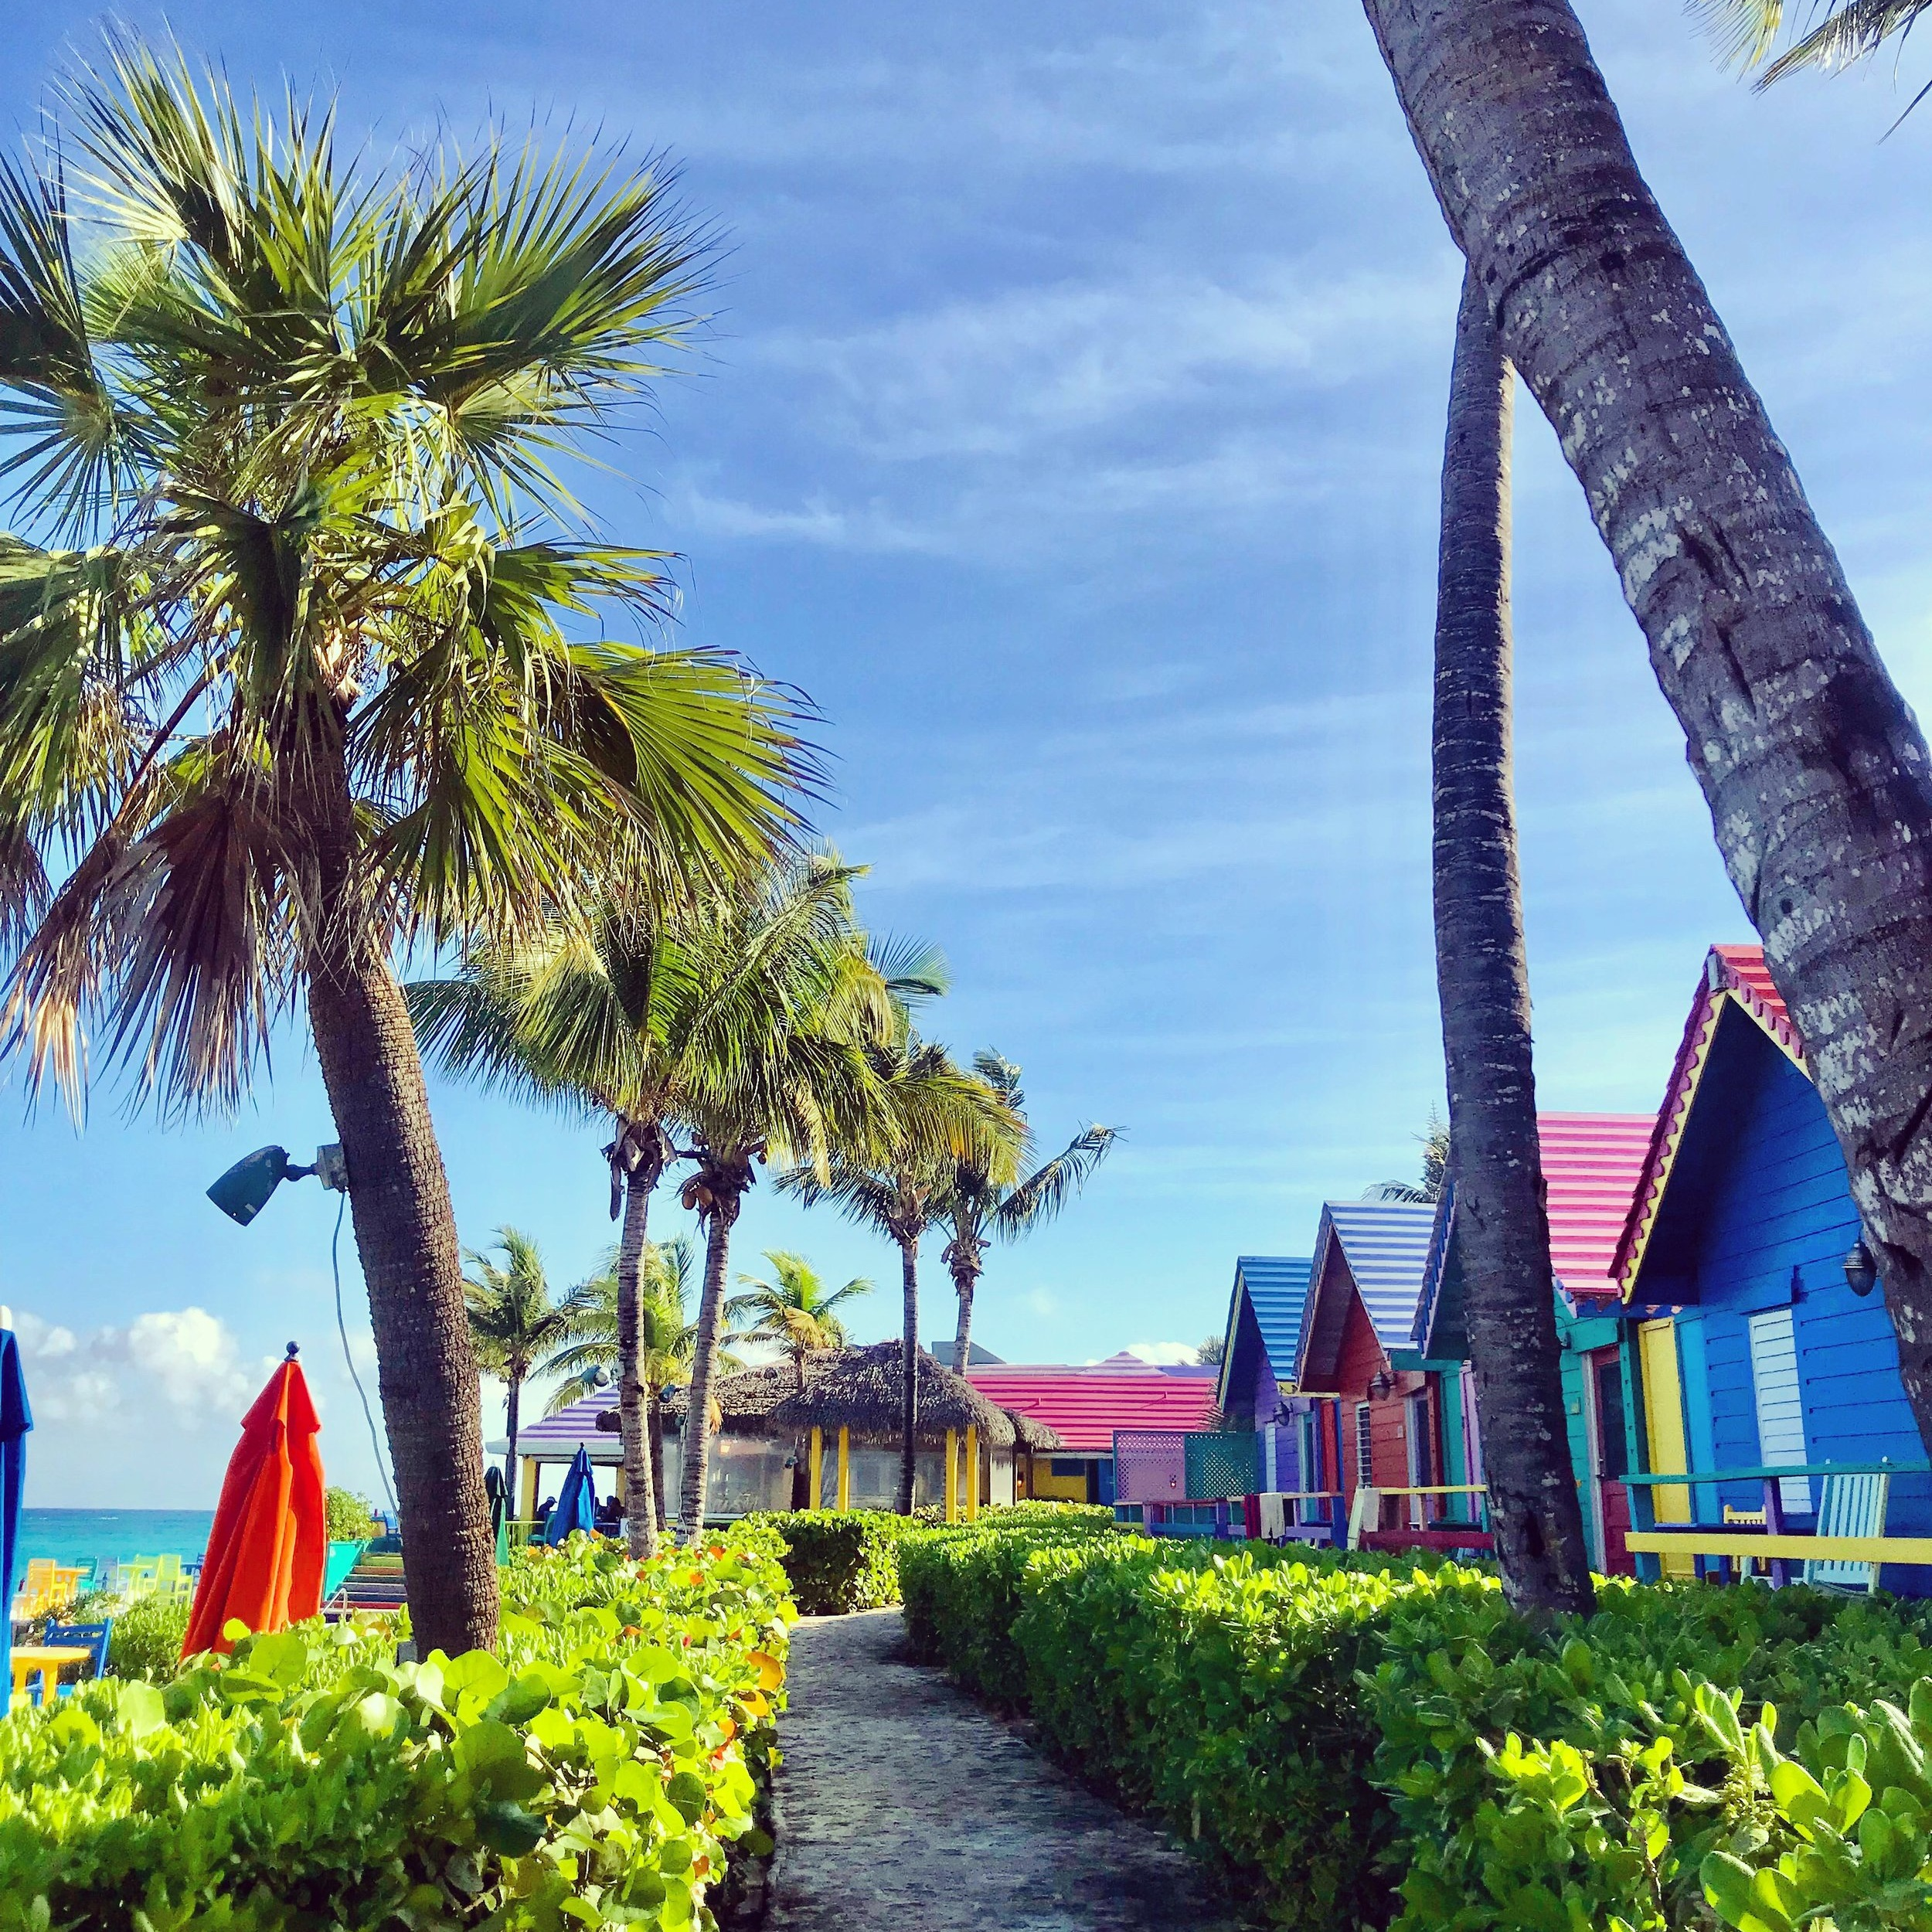 This (Lesser-Known) Side of Paradise: Explore Bahamian Culture in Nassau - THE BERNARDSVILLE NEWS: If you think you've experienced all the Bahamas have to offer because you visited the islands for a weekend getaway (or spring break bacchanal), think again. There is more to the Bahamas than Senor Frogs and swimming with pigs although, of course, both activities certainly hold their own appeal. But just outside your resort, or inland from the sandy beach is a thriving culture and food scene at your fingertips.(22 April 2019)